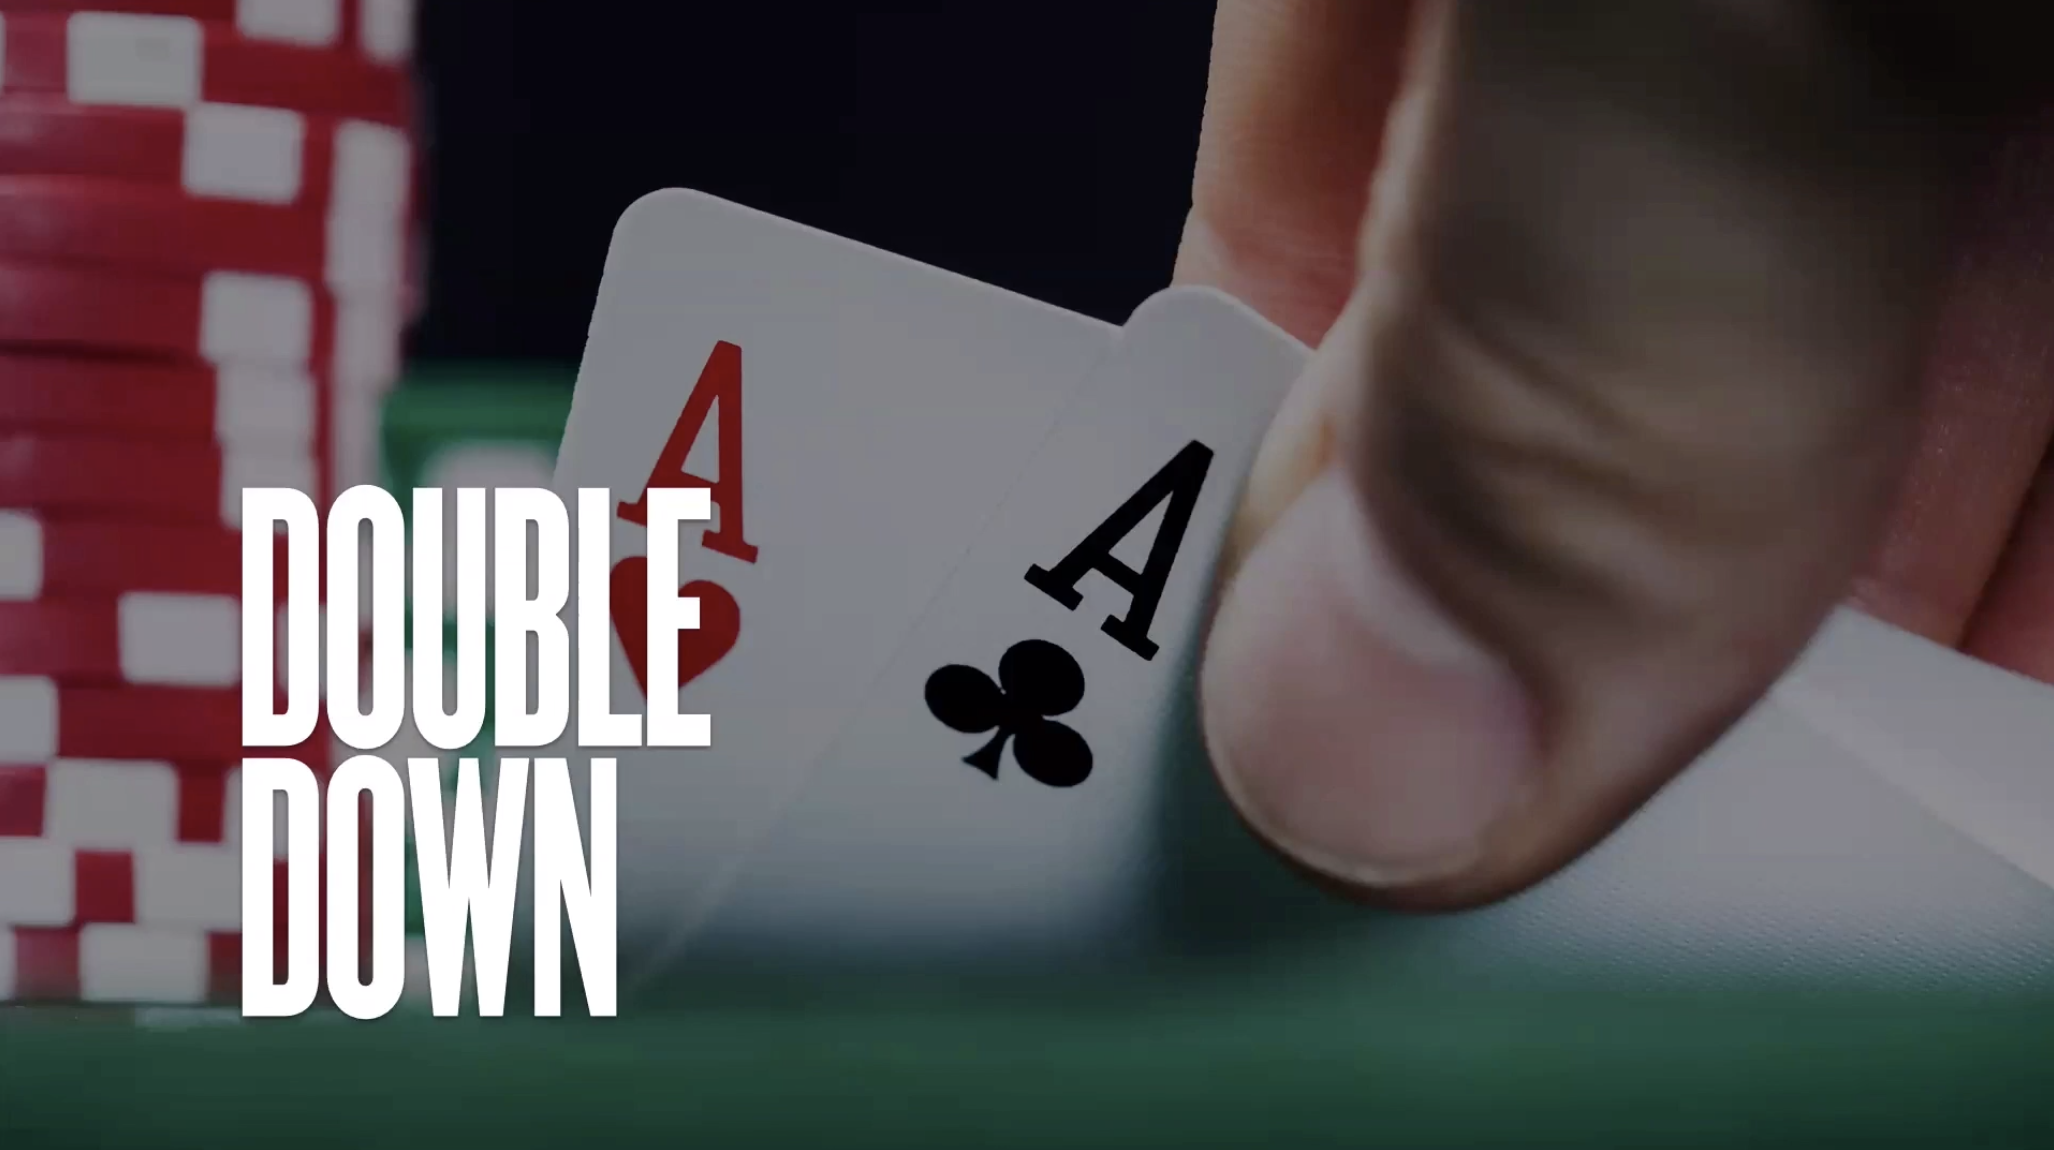 Example concept from How to Negotiate: Double Down.